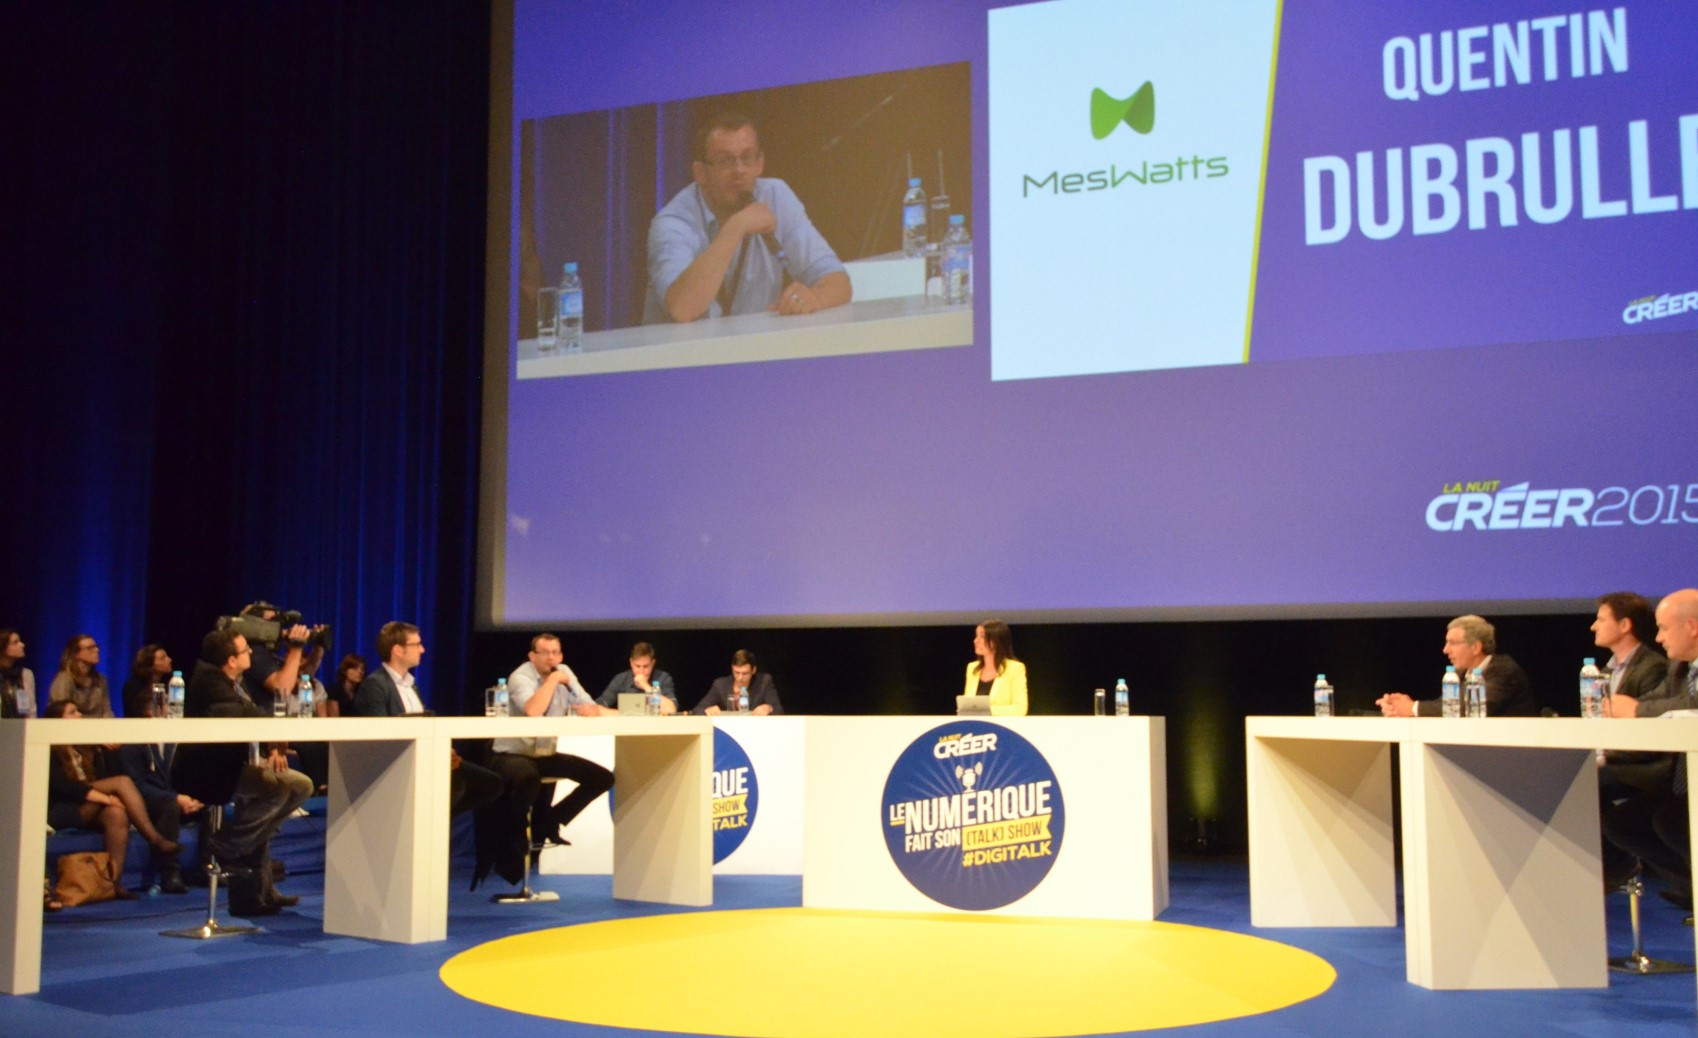 mewatts uneole digitalk salon creer